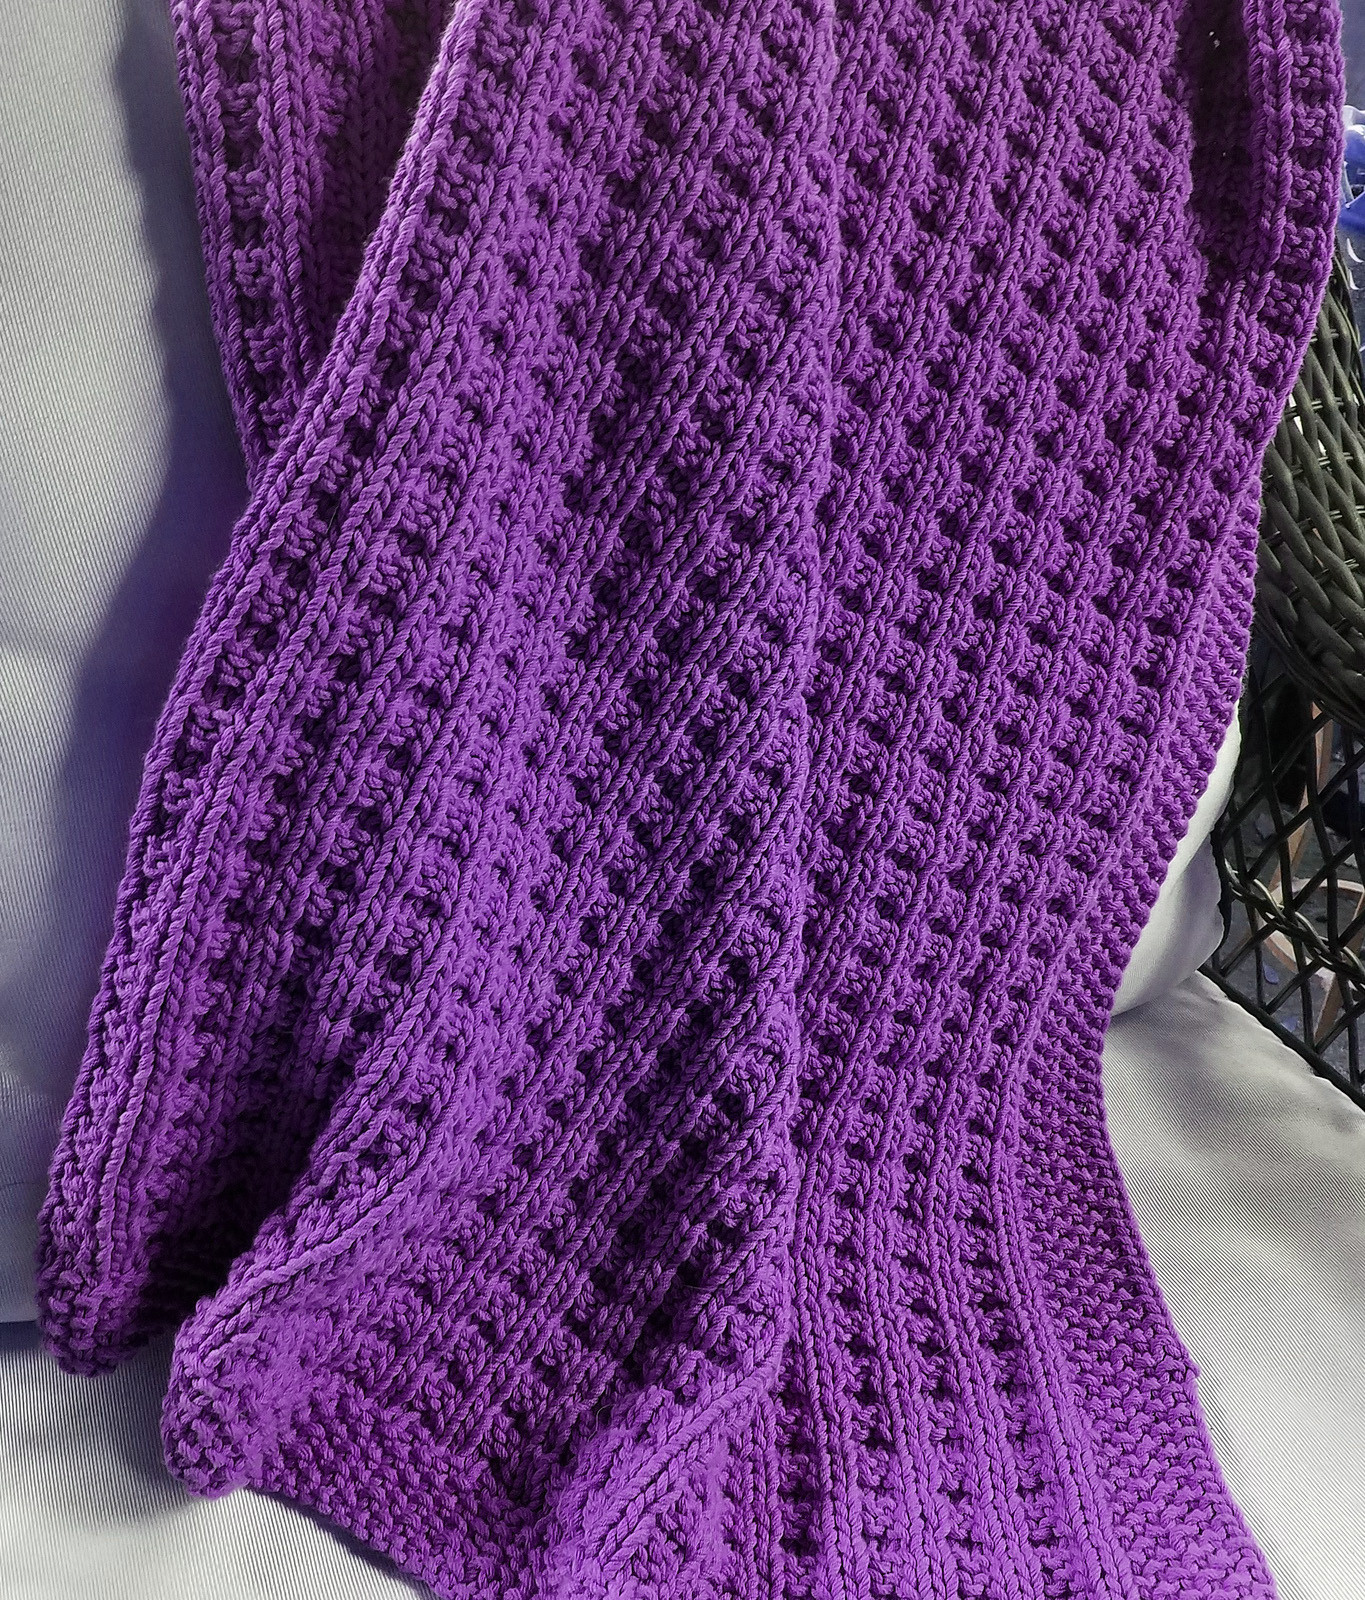 Best Of Quick Baby Blanket Knitting Patterns Free Weaving Patterns Of Lovely 47 Photos Free Weaving Patterns